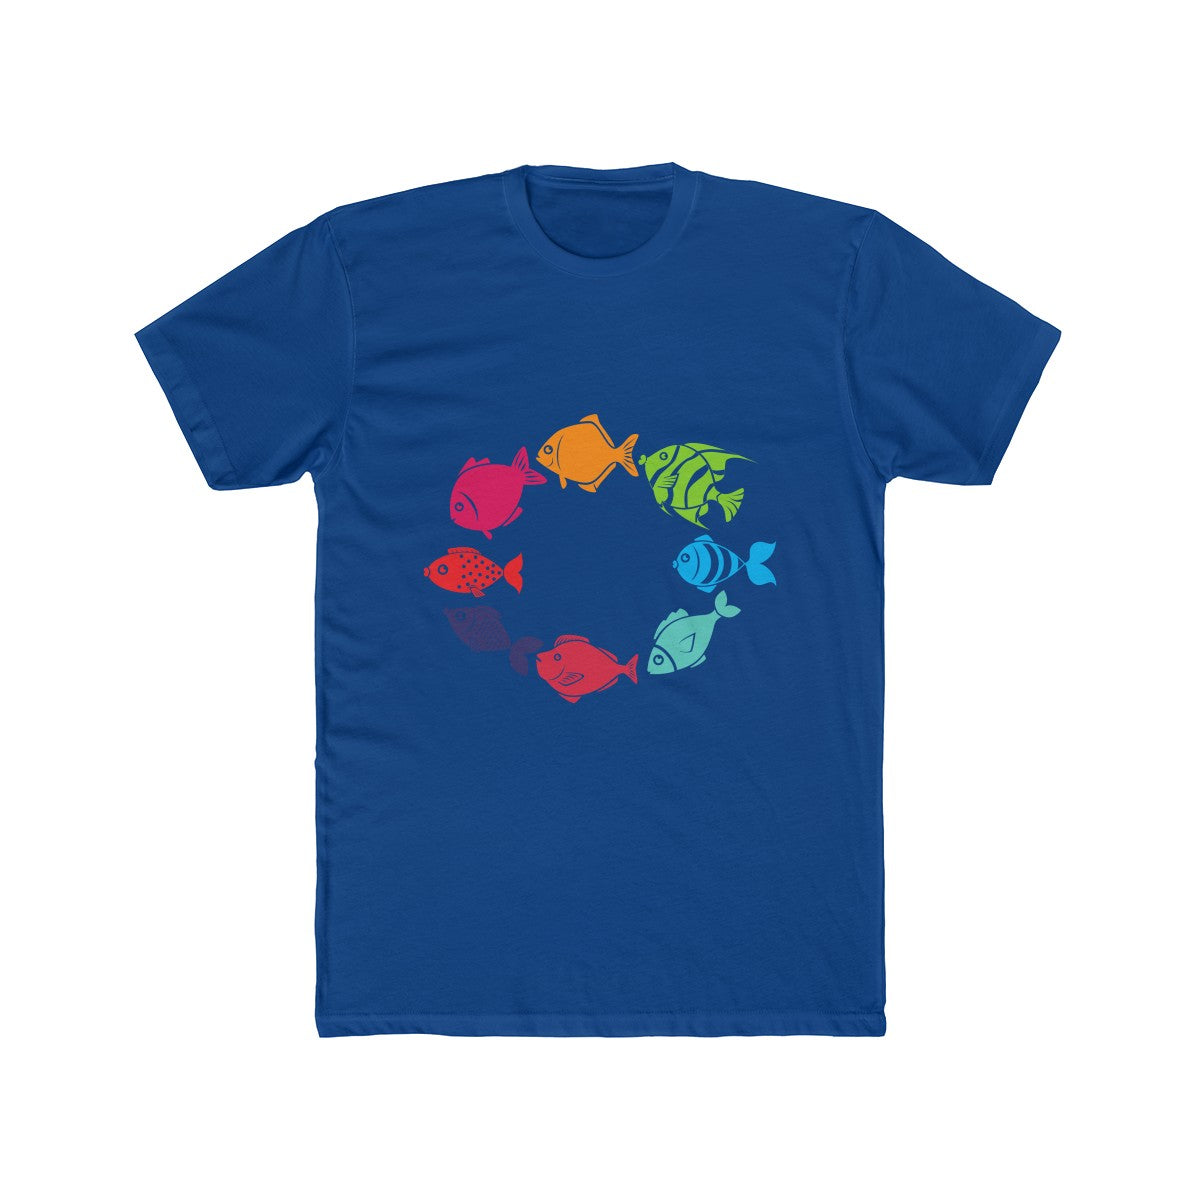 Fish in a Circle on a Men's Cotton Crew Tee